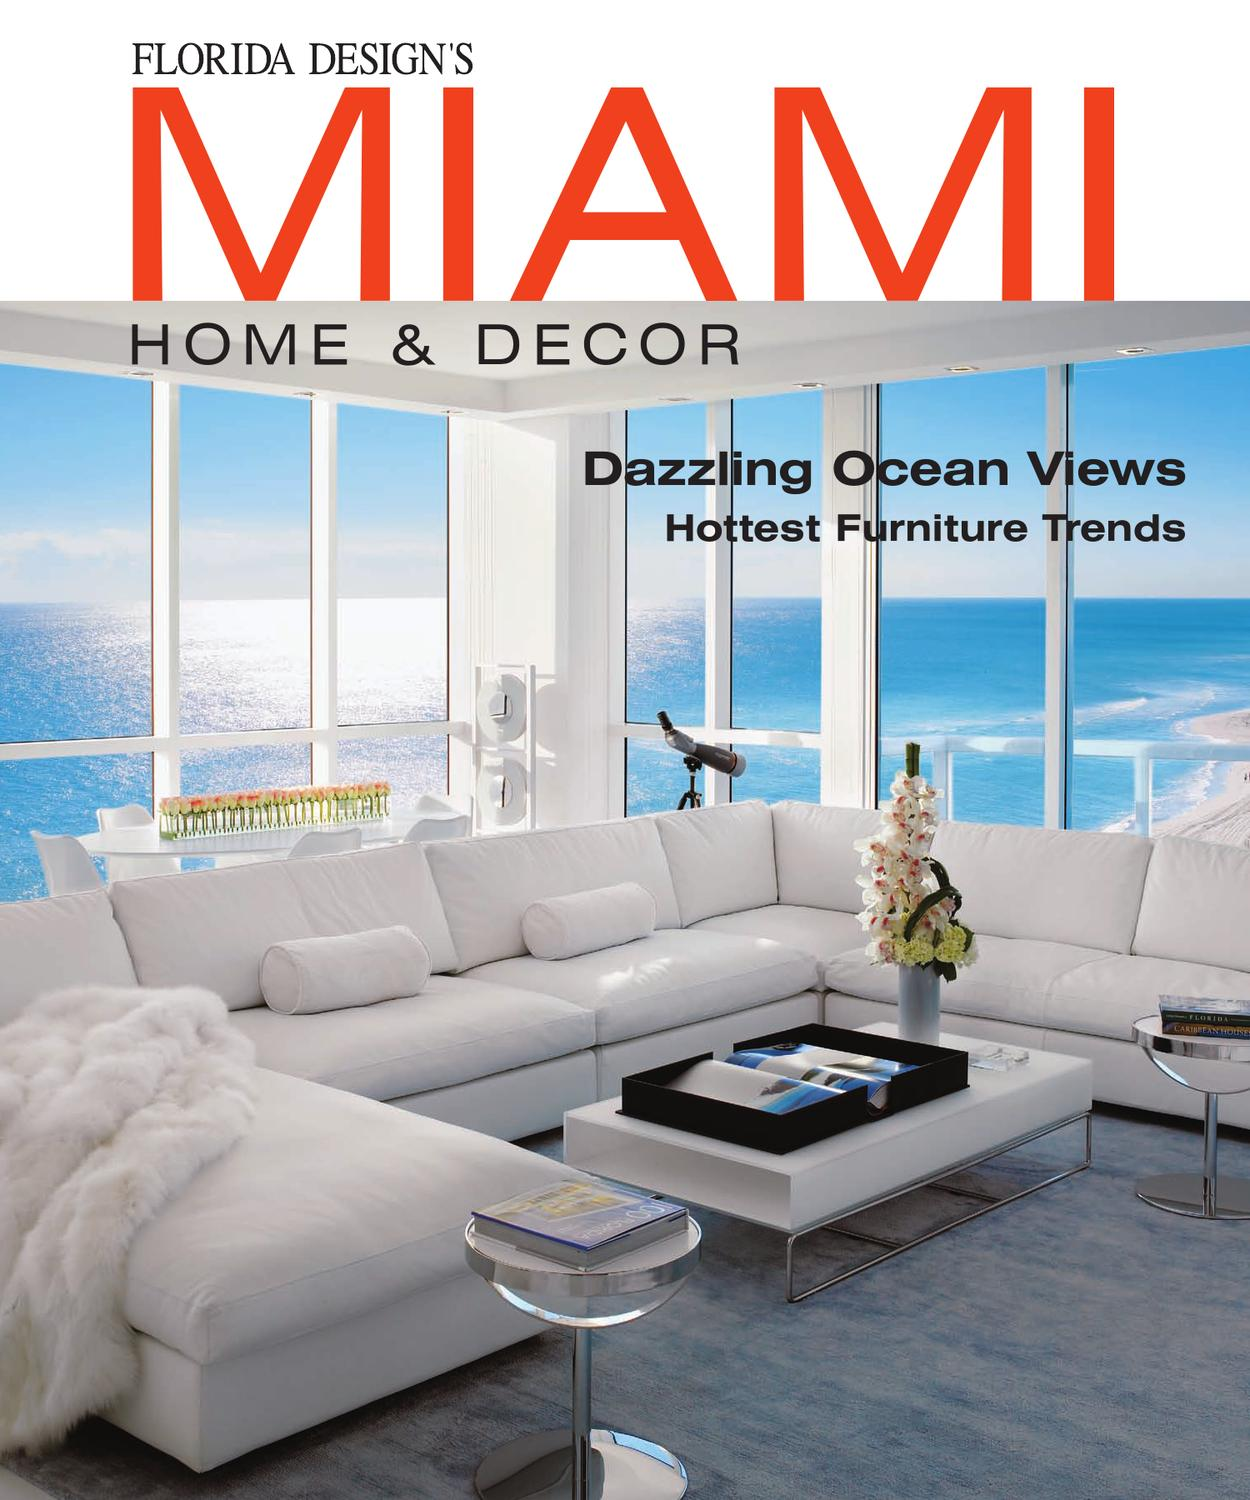 Home Decor Magazine miami home & decor magazinebill fleak - issuu